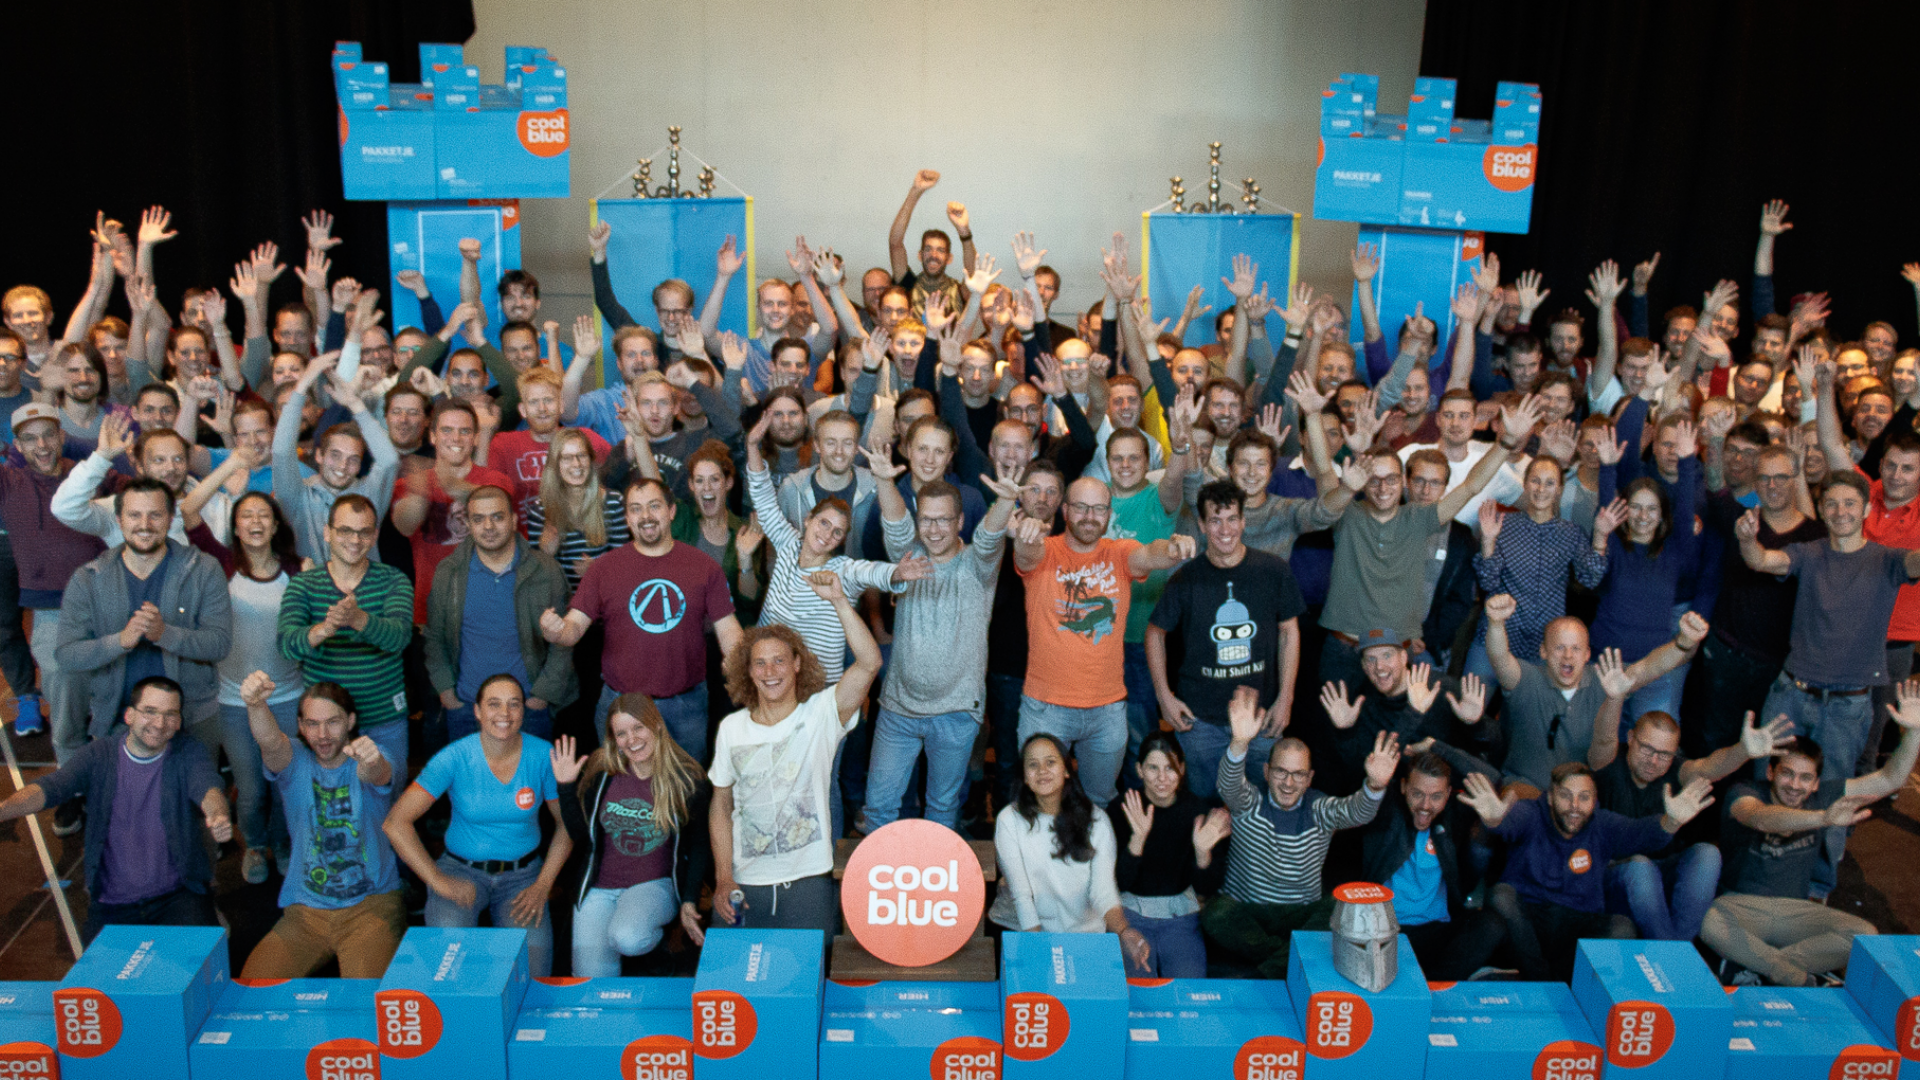 De Coolblue Hackathon 2016